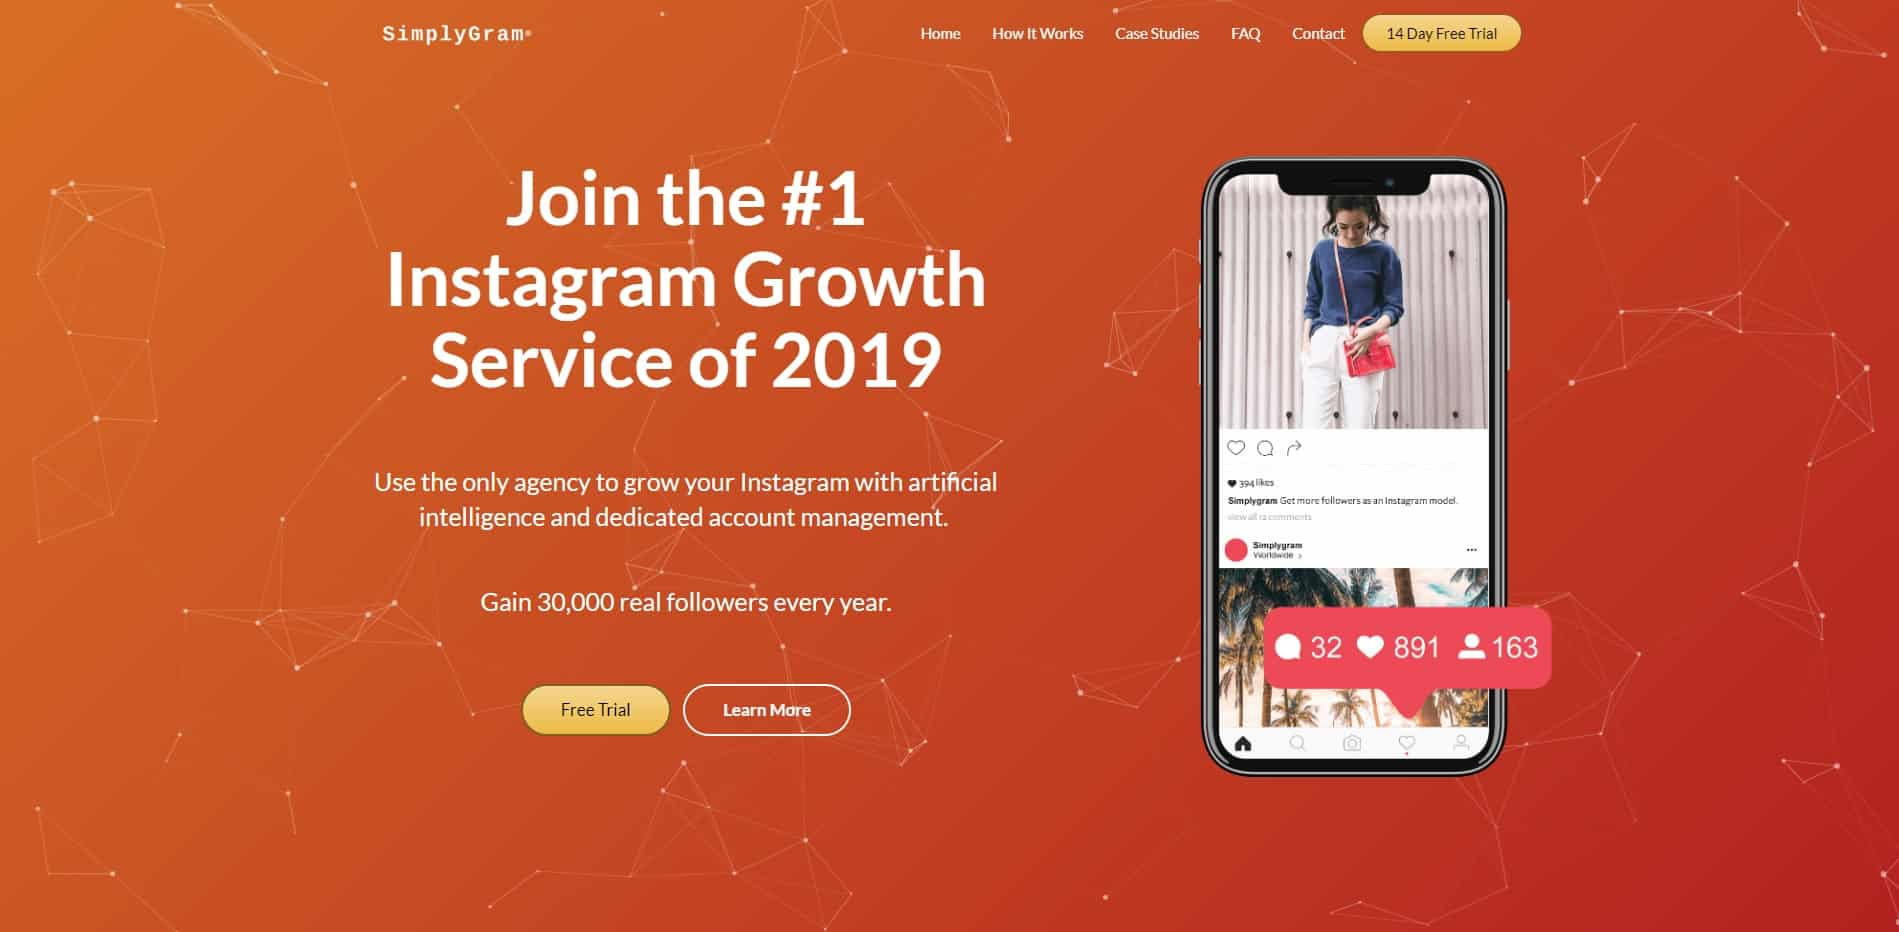 SimplyGram – Get More Real Instagram Followers | FREE Trial